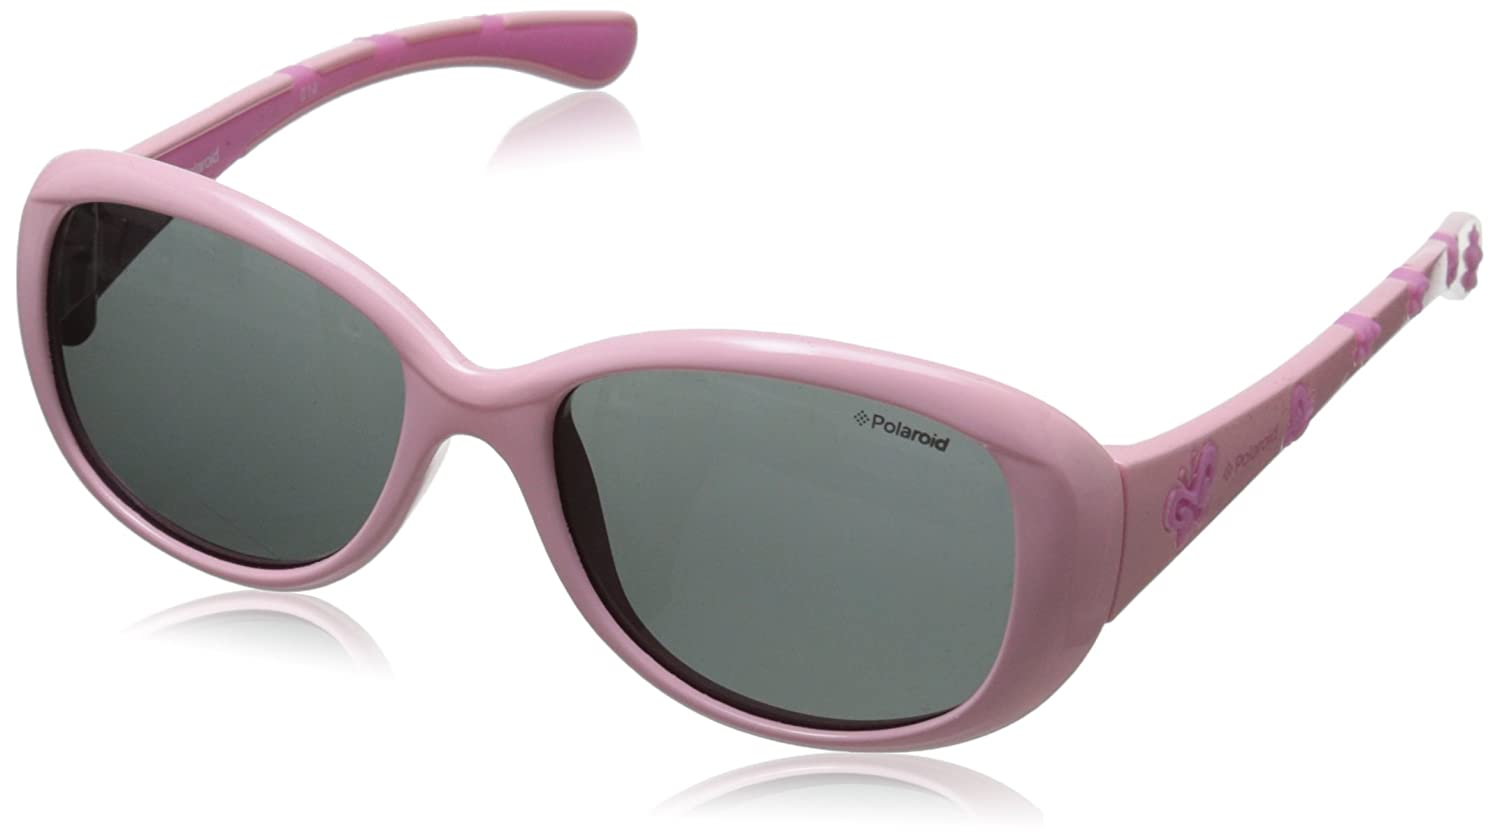 Polaroid Sunglasses P0411S Polarized Oval Sunglasses Pink 45 mm P0411 Y23ZJ_